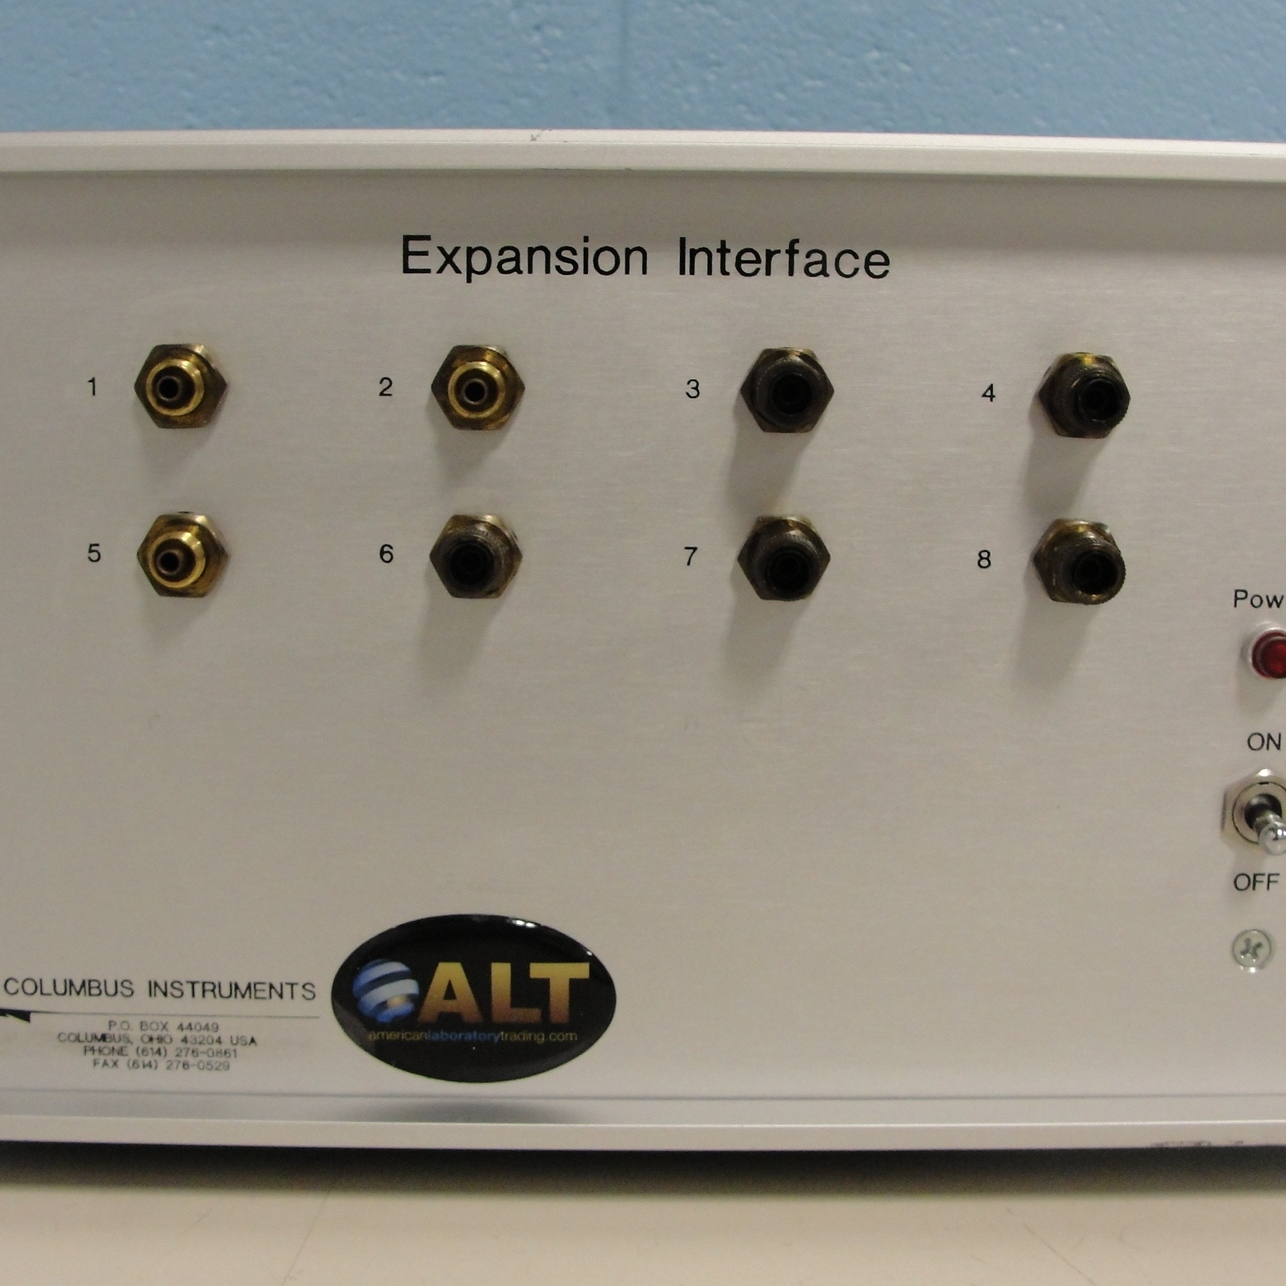 Expansion Interface Name